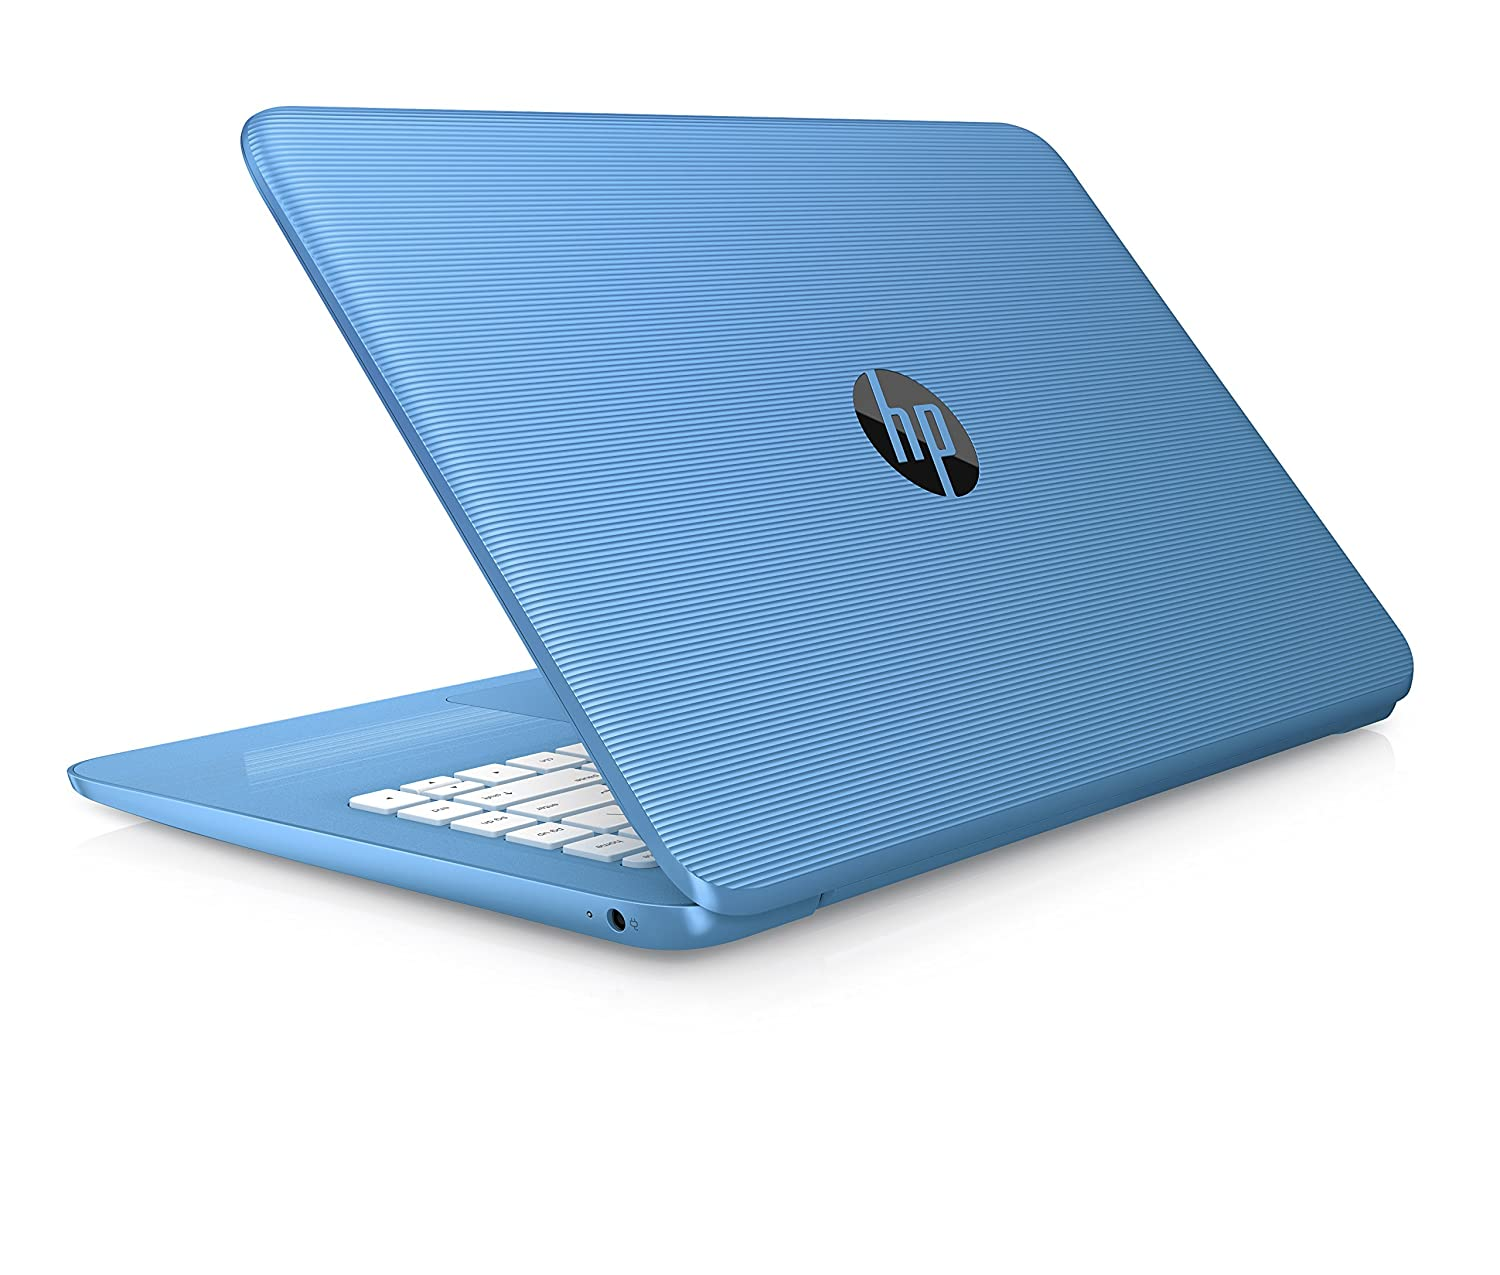 HP Stream 14-ax000na 14-inch HD Laptop (Aqua Blue) – (Intel Celeron N3060, 4GB RAM, 32GB eMMC, 1TB OneDrive and Office 365, 1 Year Subscription Included, Intel HD Graphics, Windows 10)